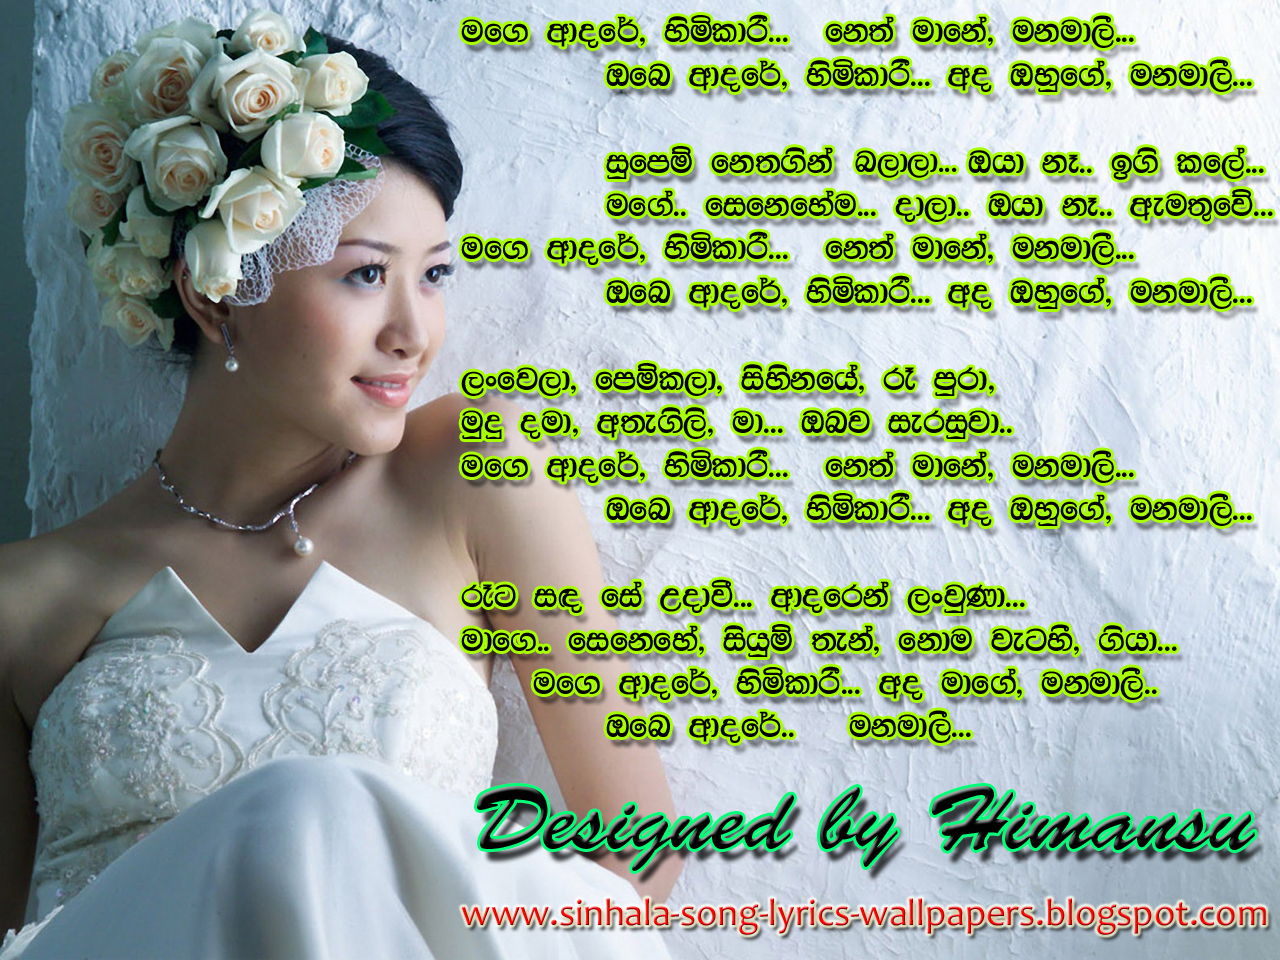 Download sinhala new songs view original updated on 11 24 2015 at